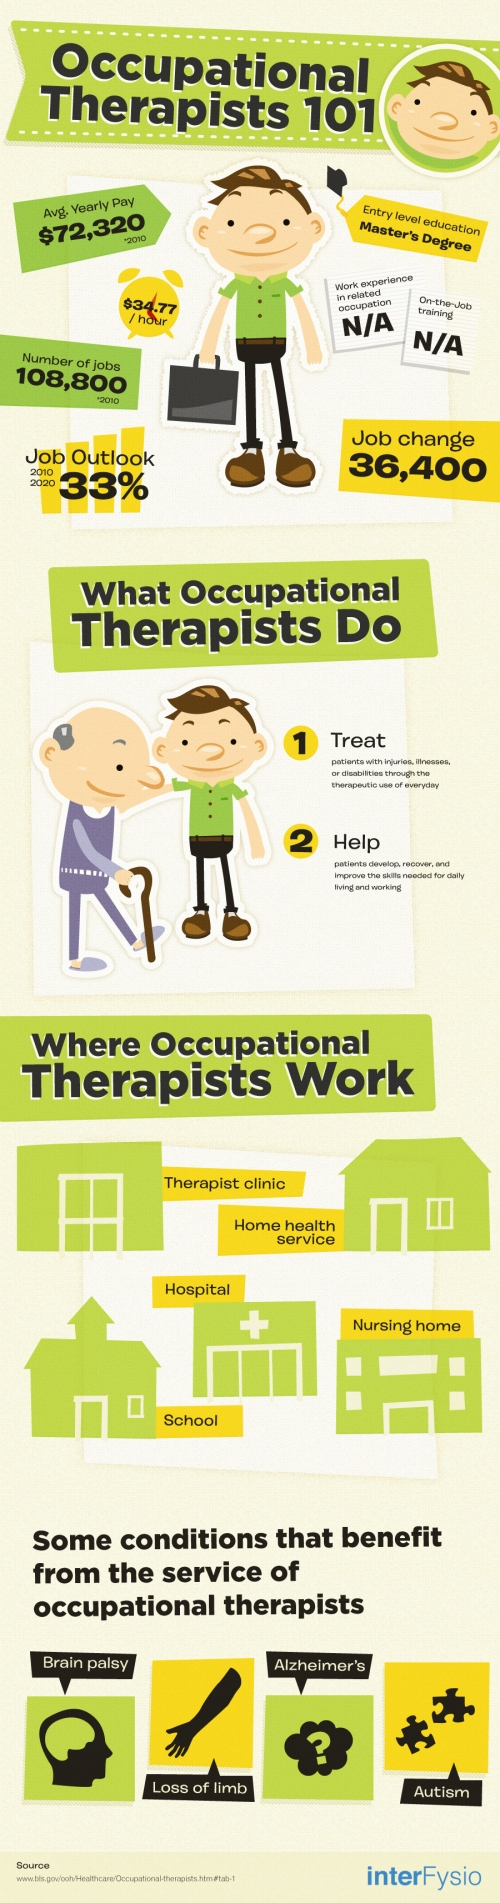 occupational therapists infographic